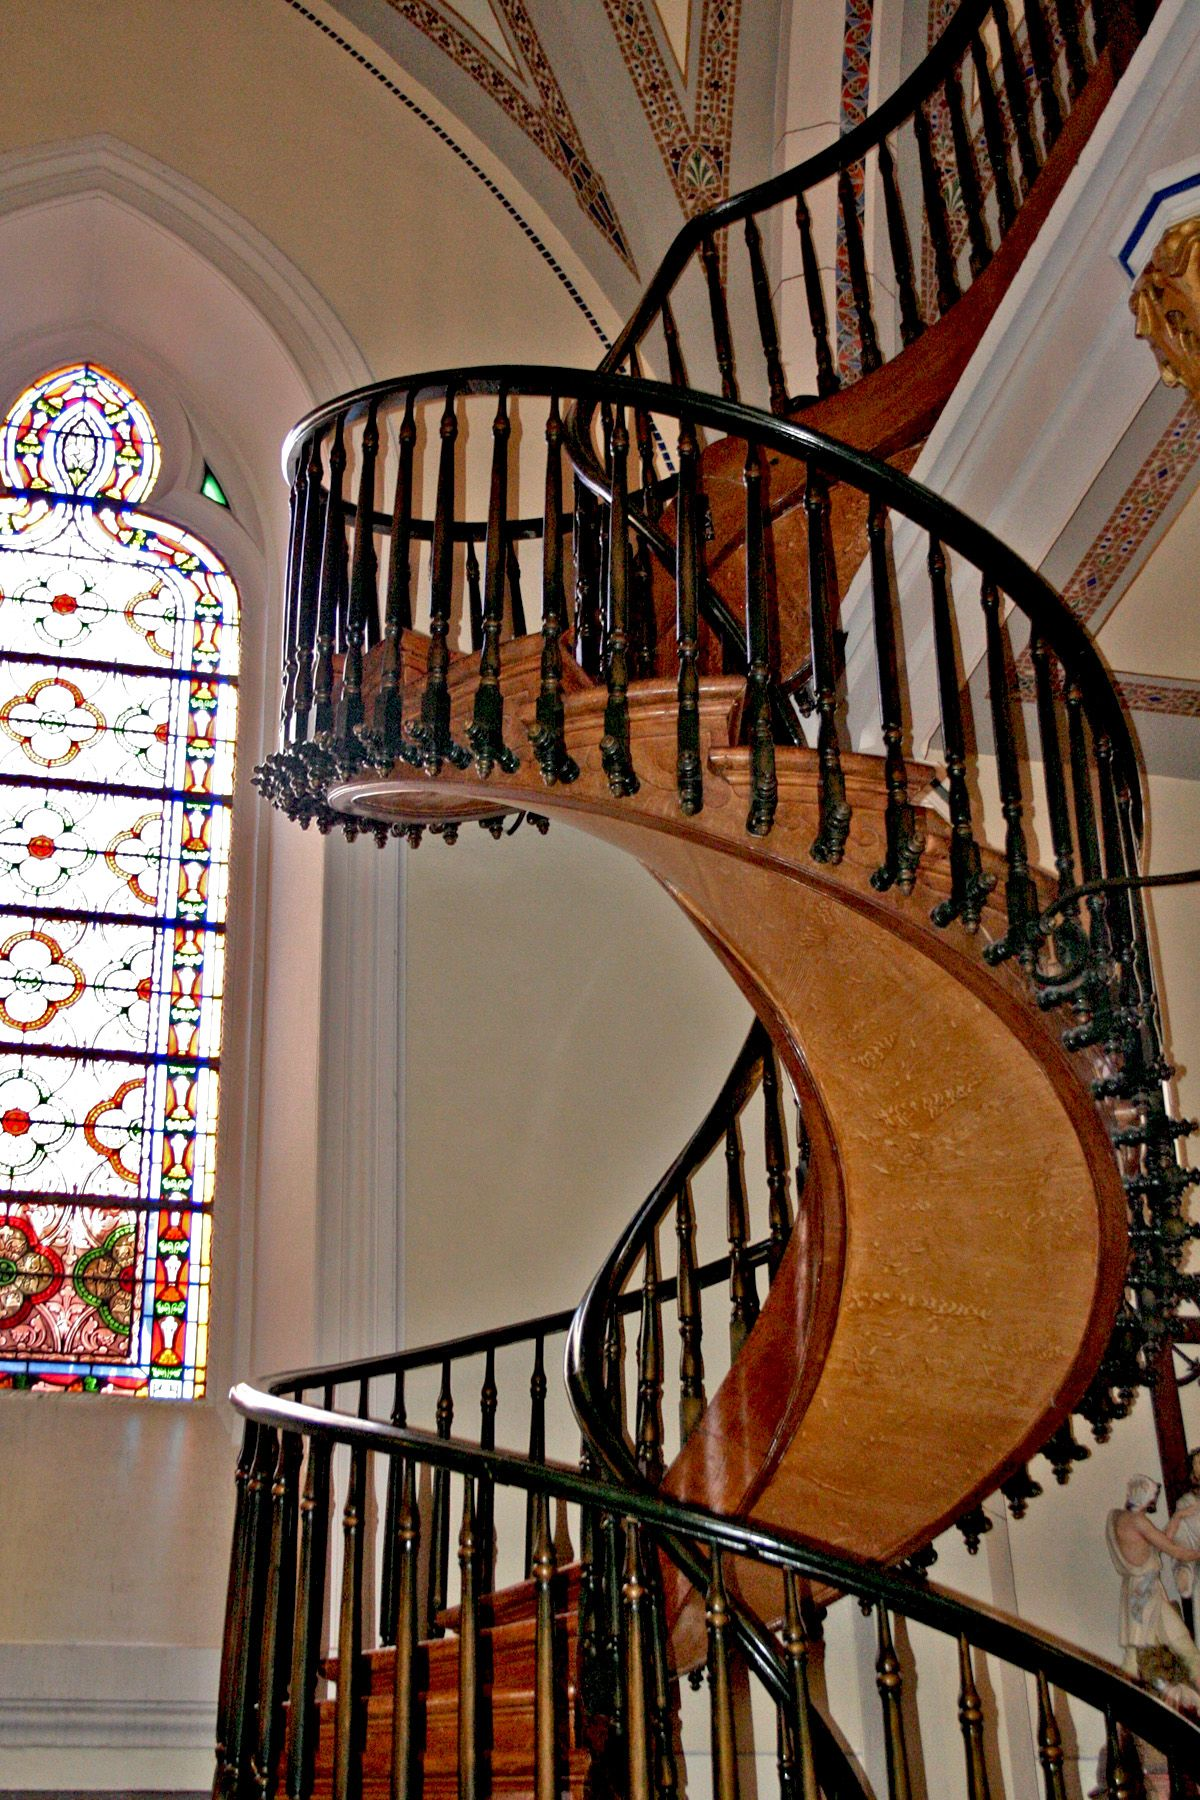 Captivating Santa Fe, New Mexico   Famous Staircase In The Loretto Chapel